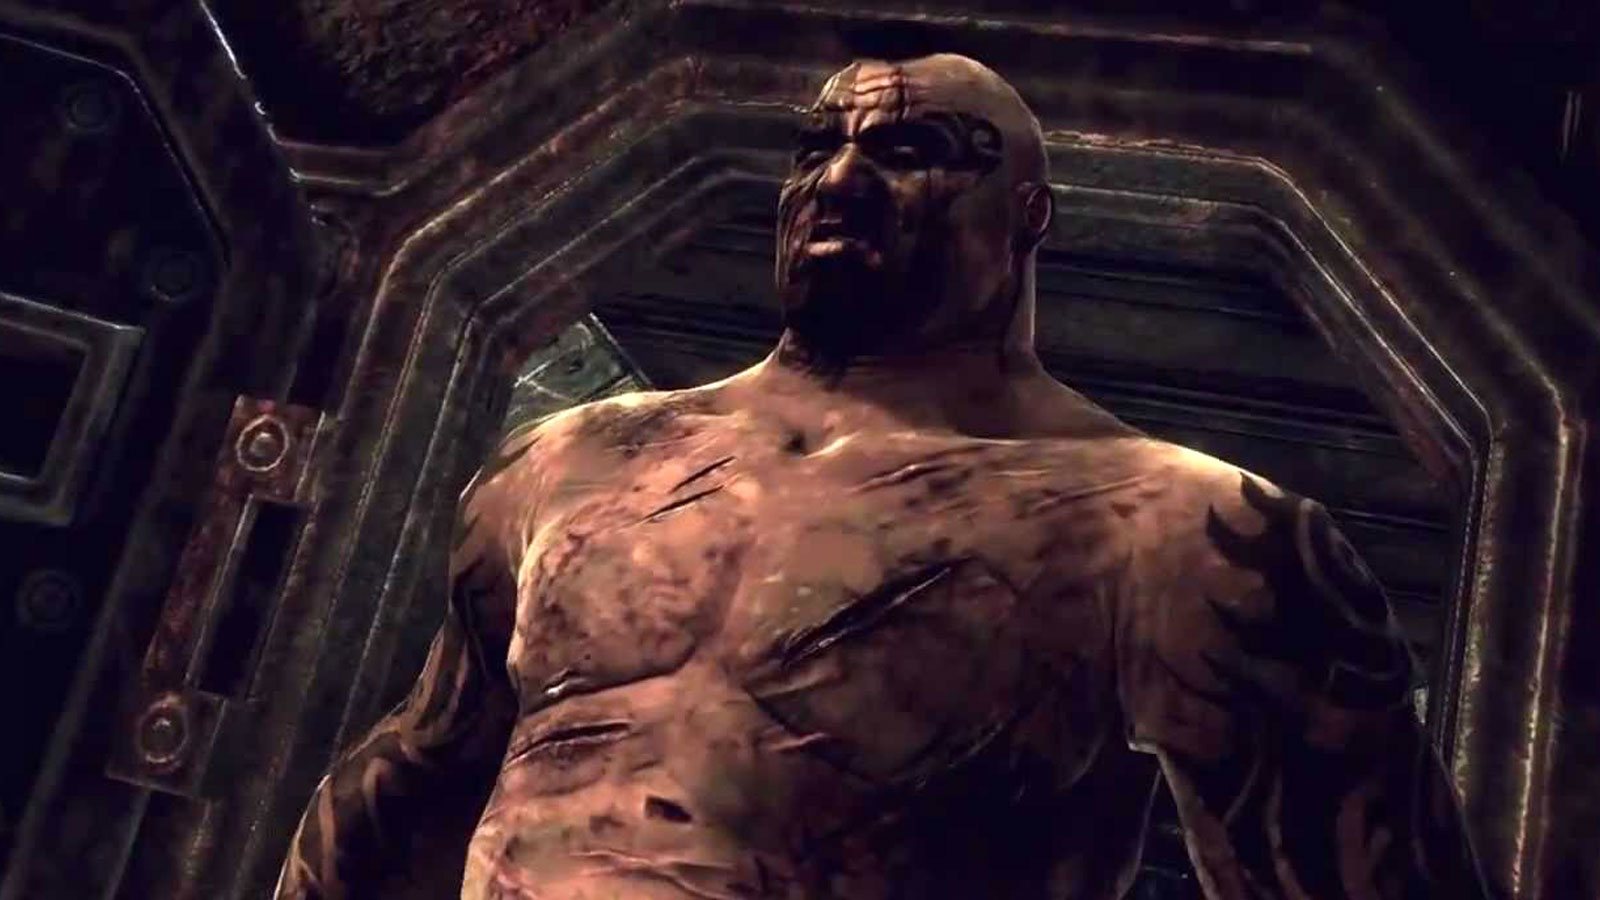 Tai in Gears of War 2, shortly before his death.